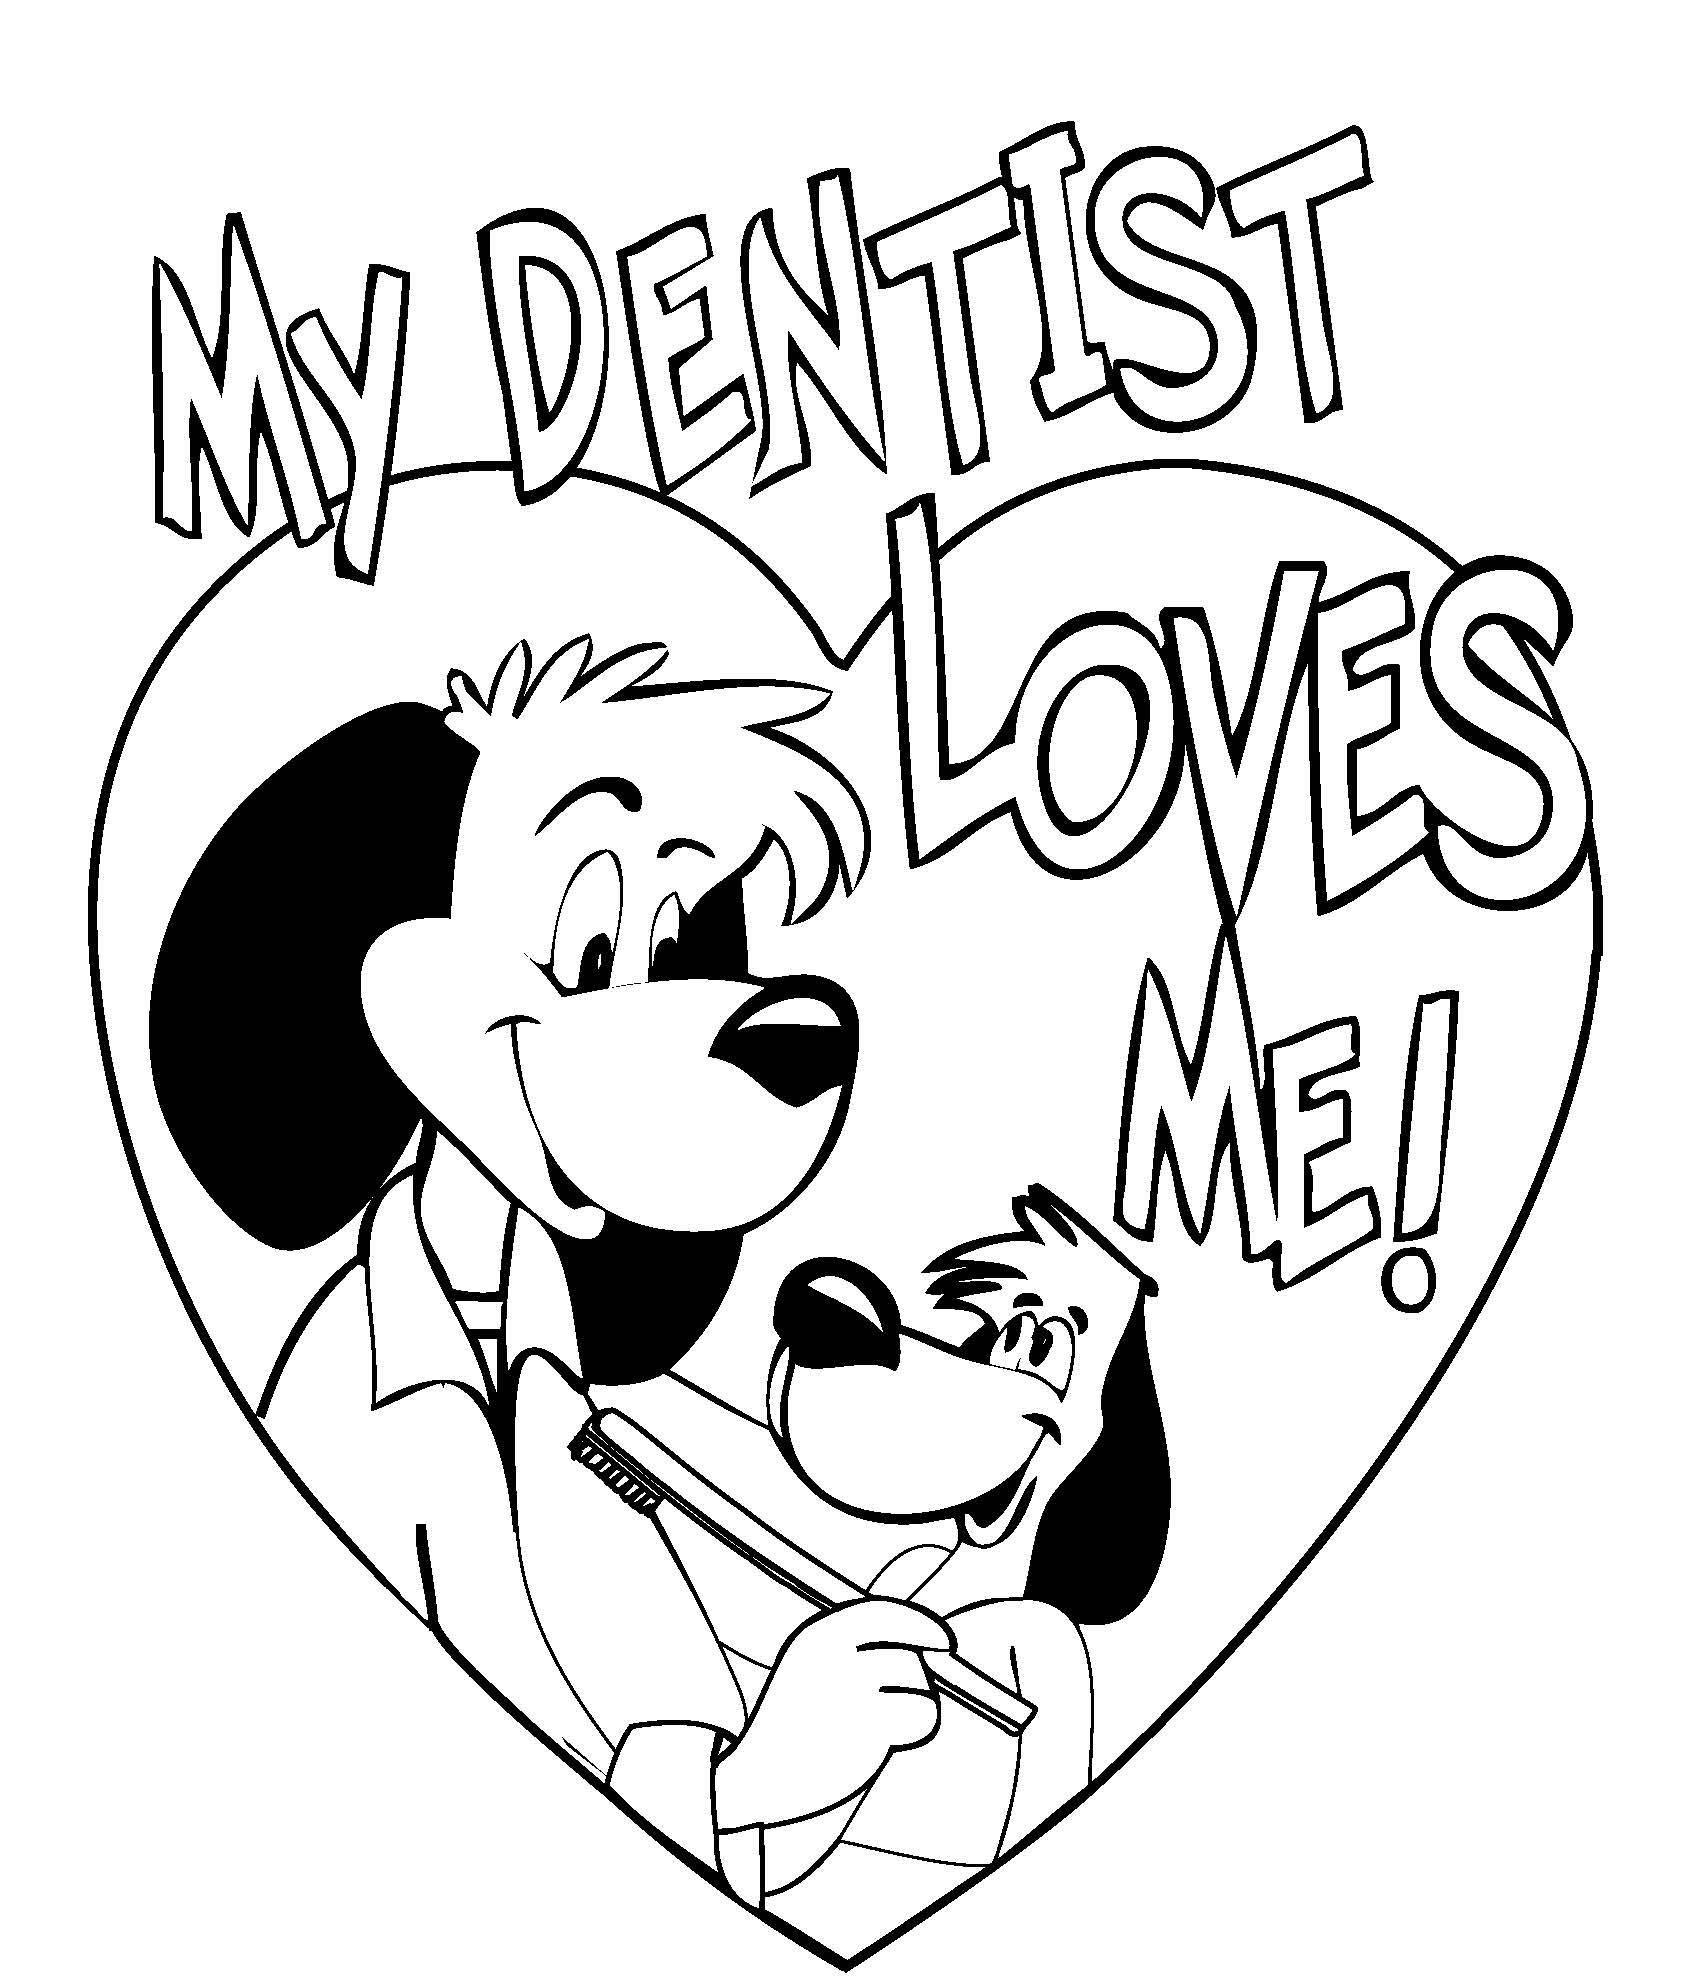 Dentist Coloring Pages for Kids Gallery 20h - Free Download